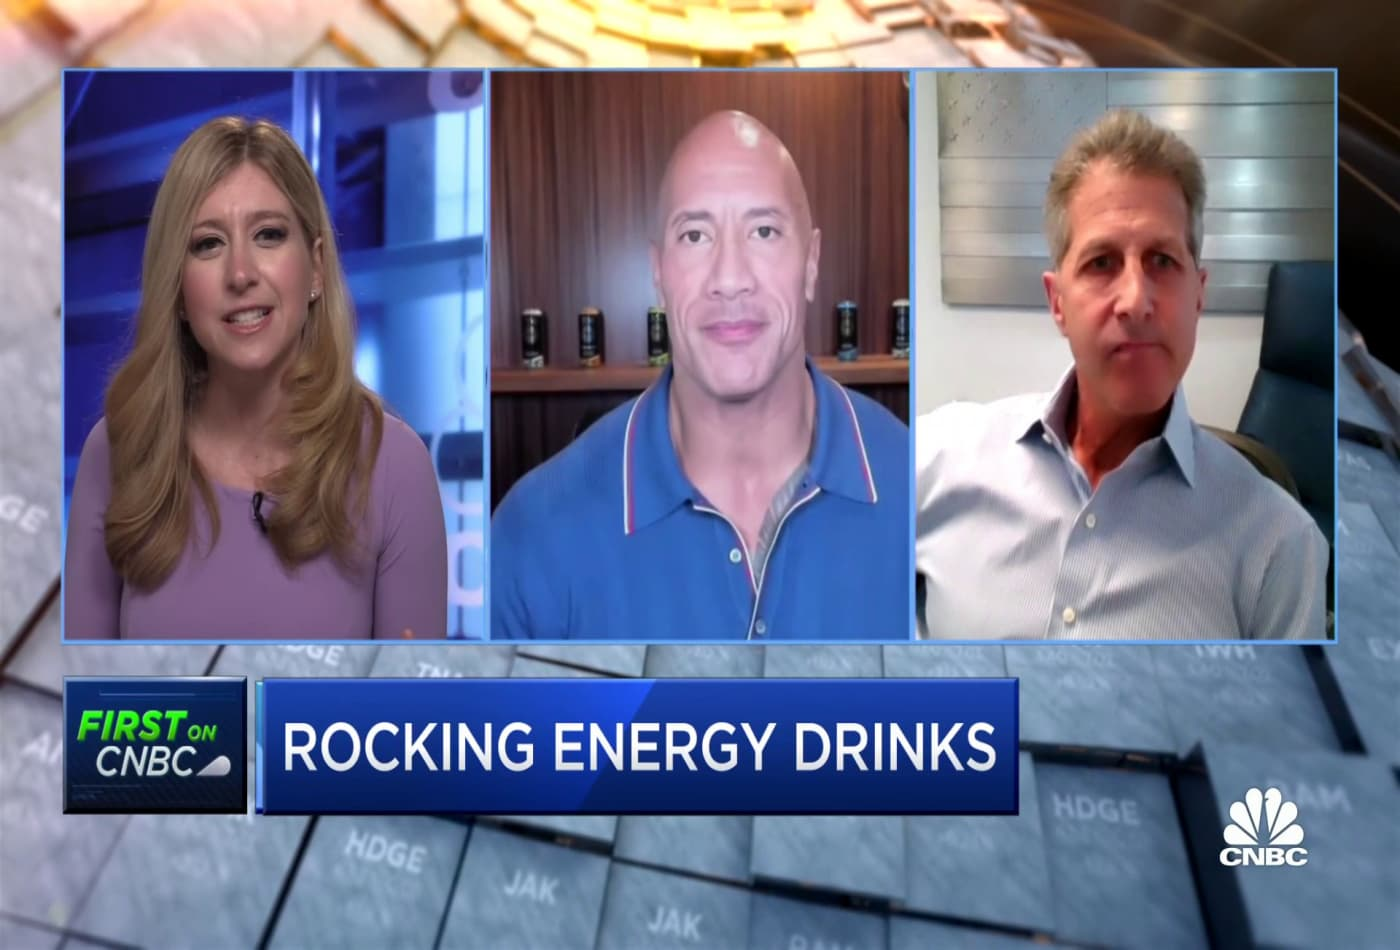 Dwayne 'The Rock' Johnson on the launch of his new energy drink